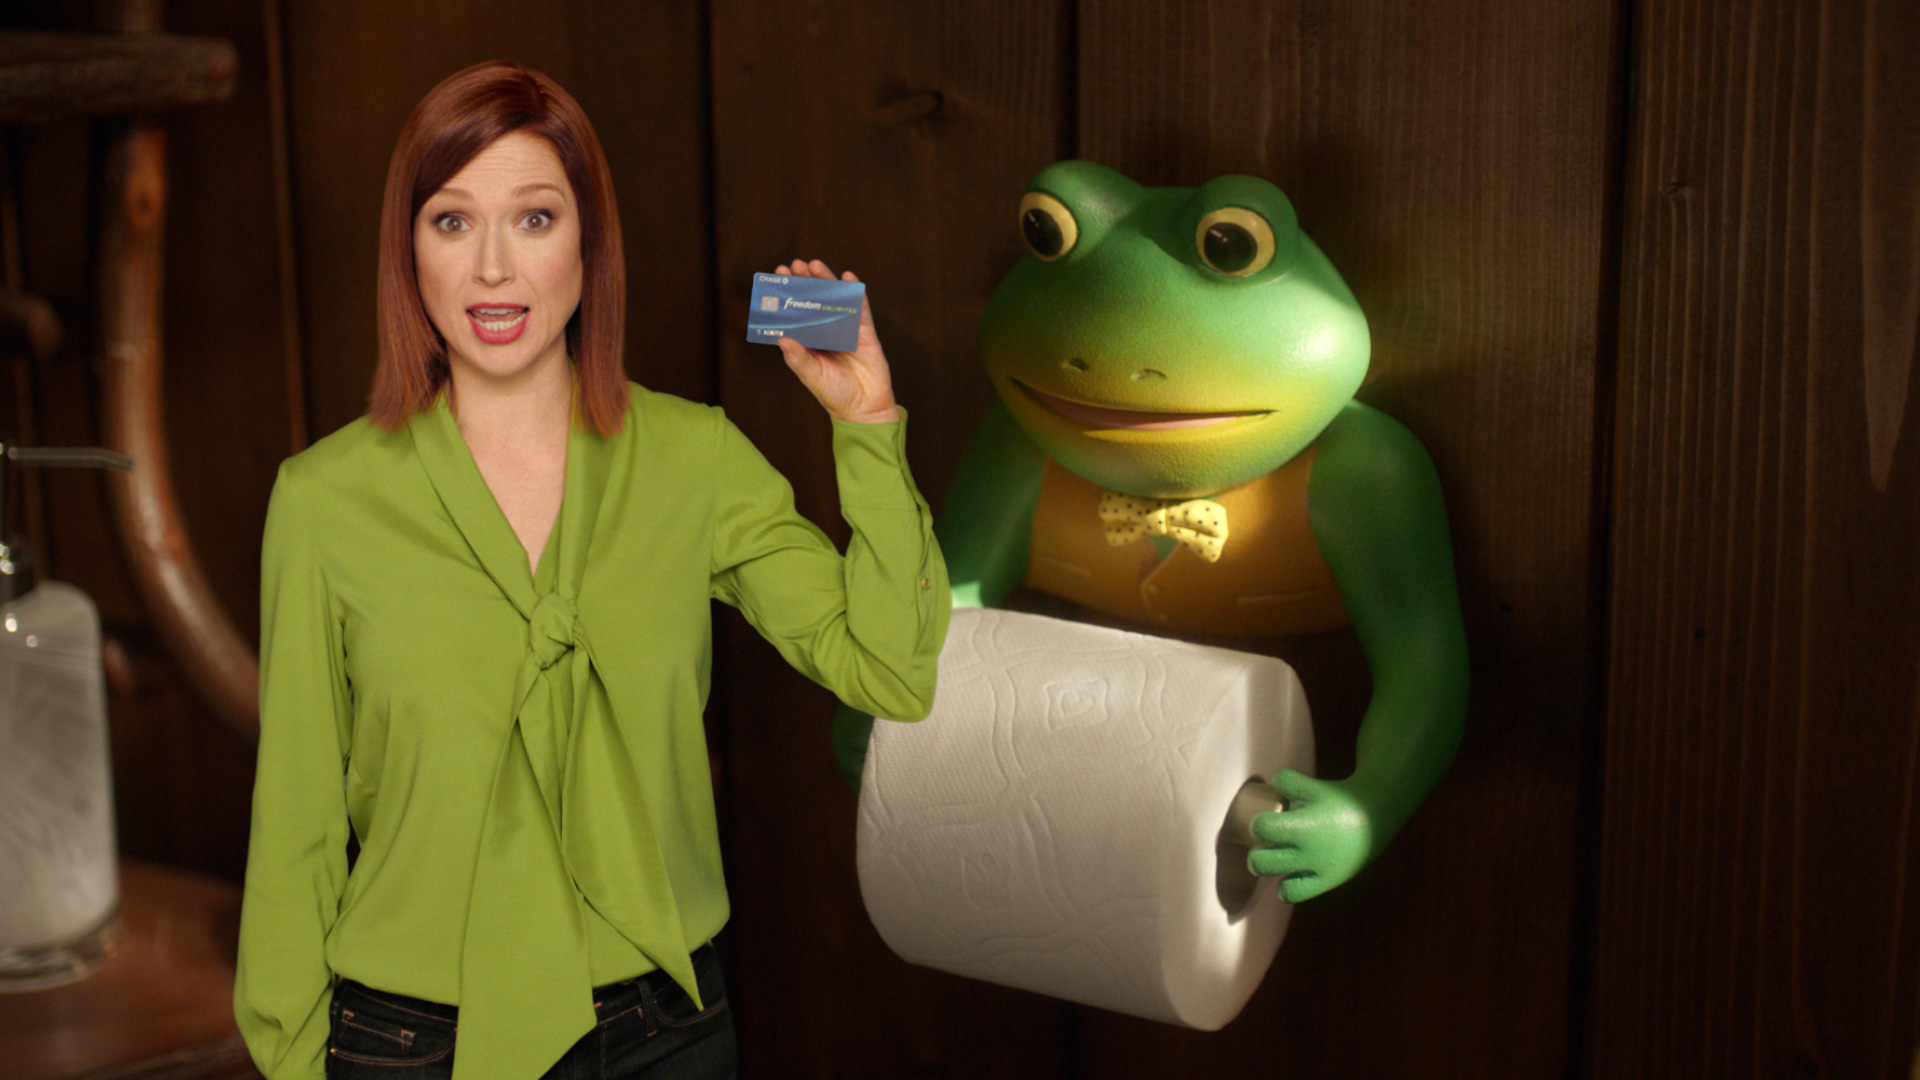 ellie kemper crashes old droga5 ads in the agency s new ads for